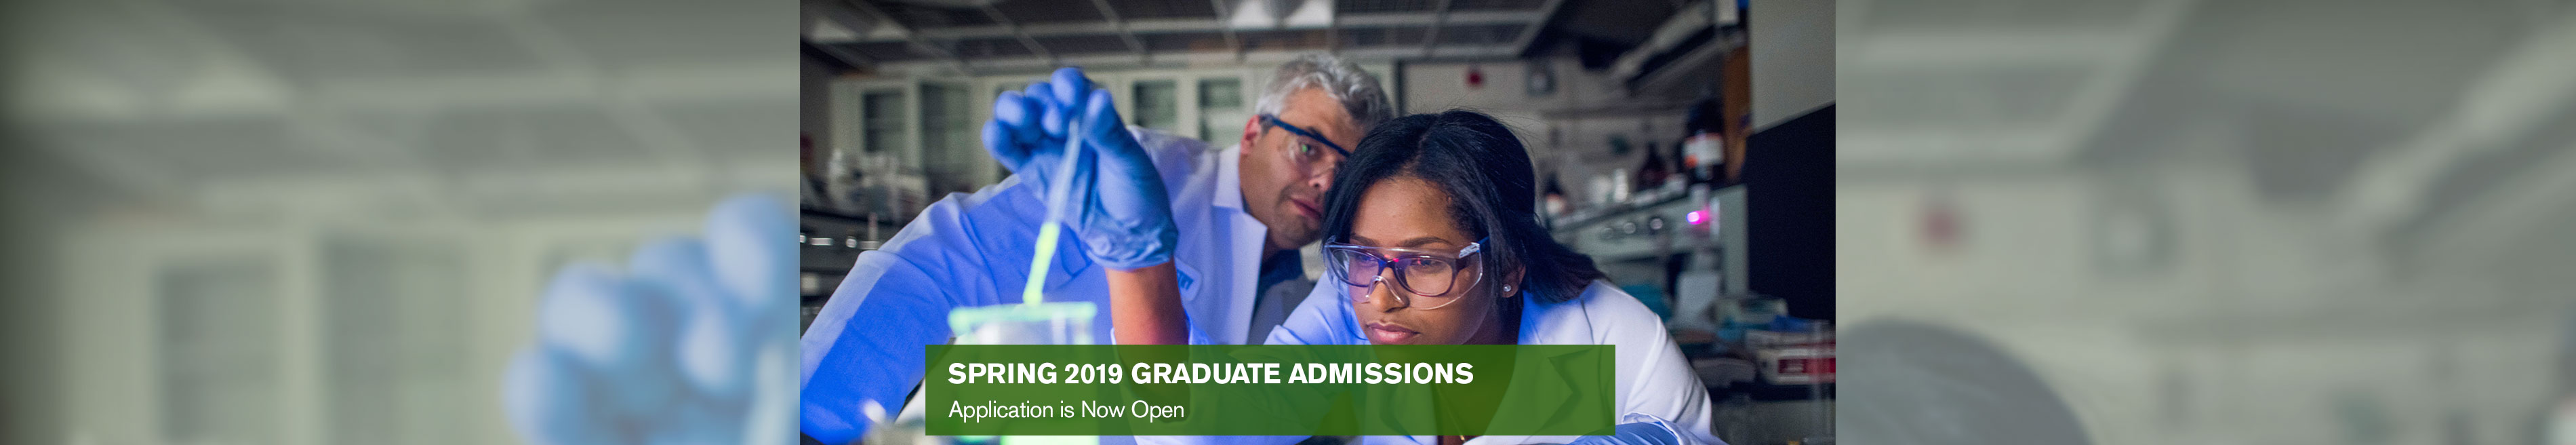 Banner for Spring 2019 Graduate Admissions